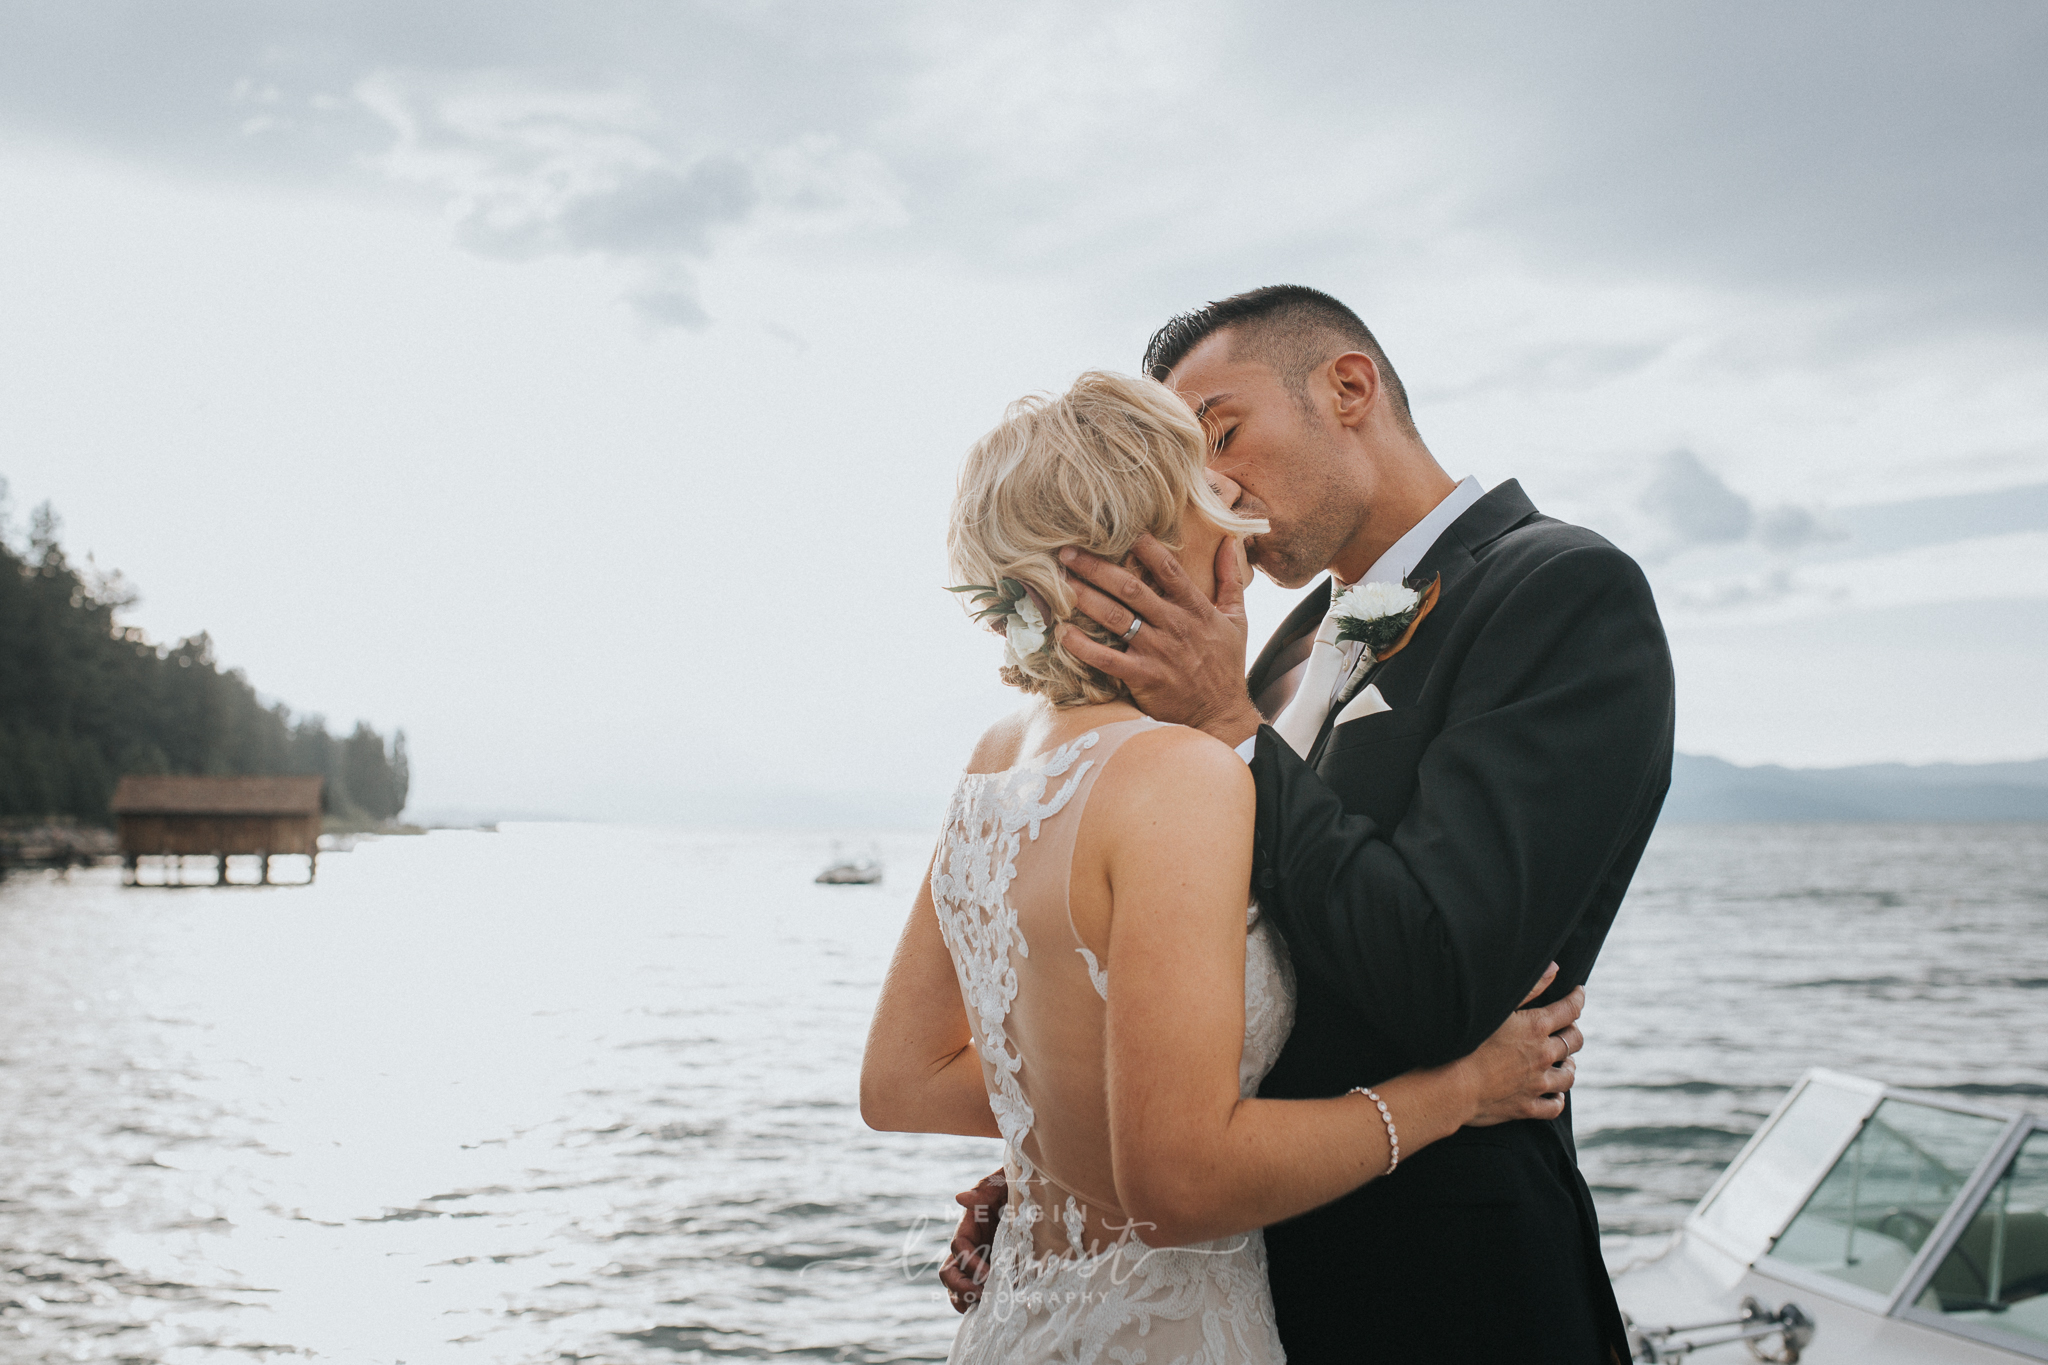 regan-beach-wedding-reno-lake-tahoe-wedding-photographer-55.jpg